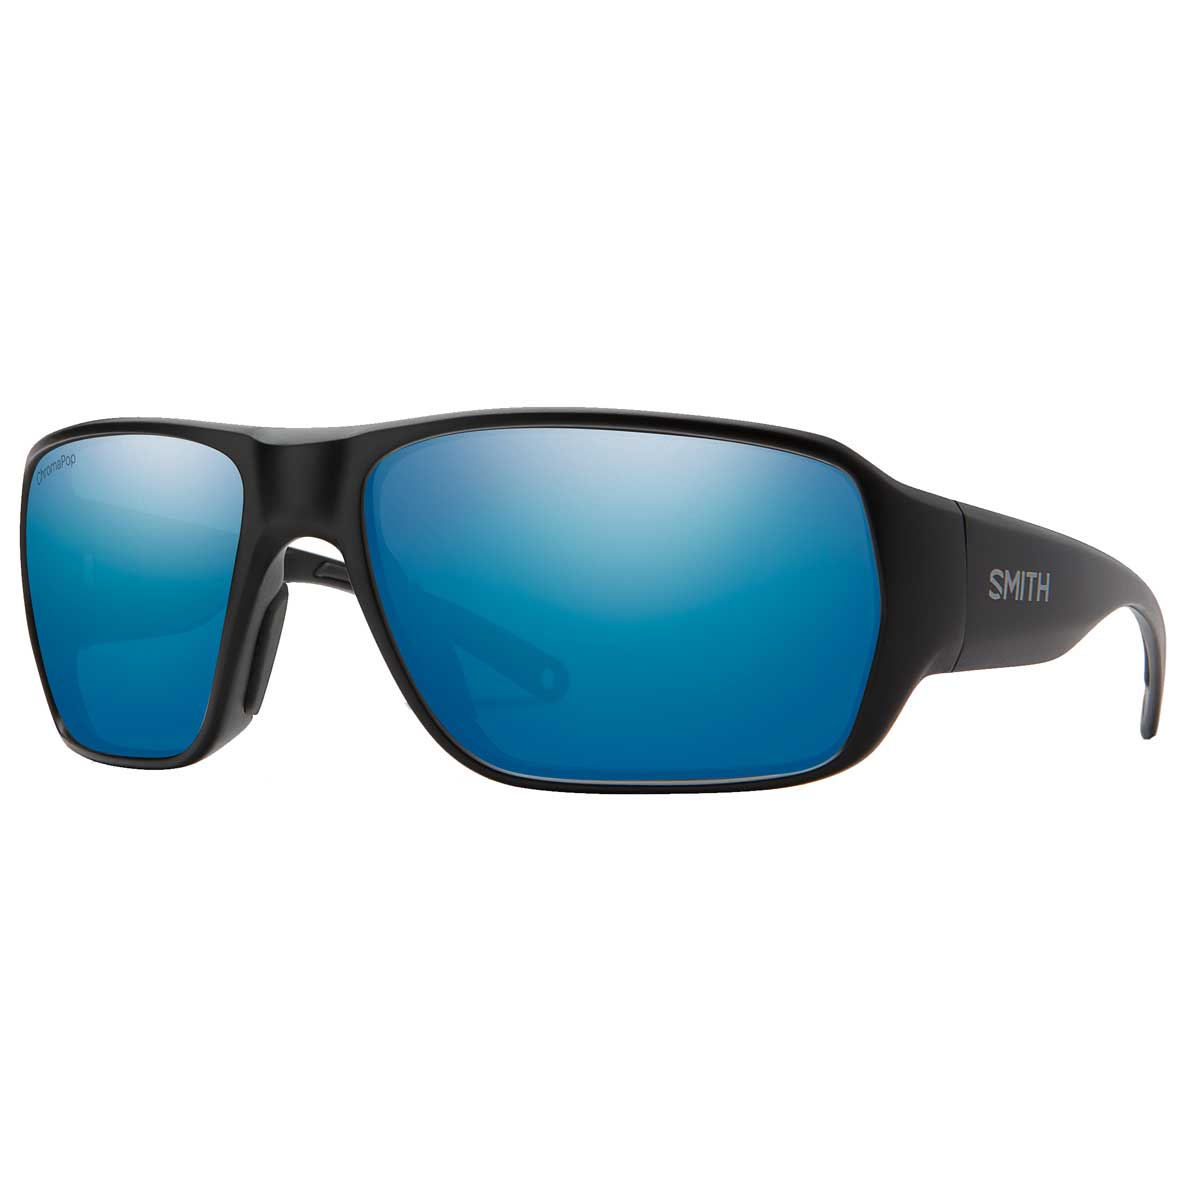 Smith Castaway sunglasses in Matte Black with blue mirror ChromaPop+ Polarized